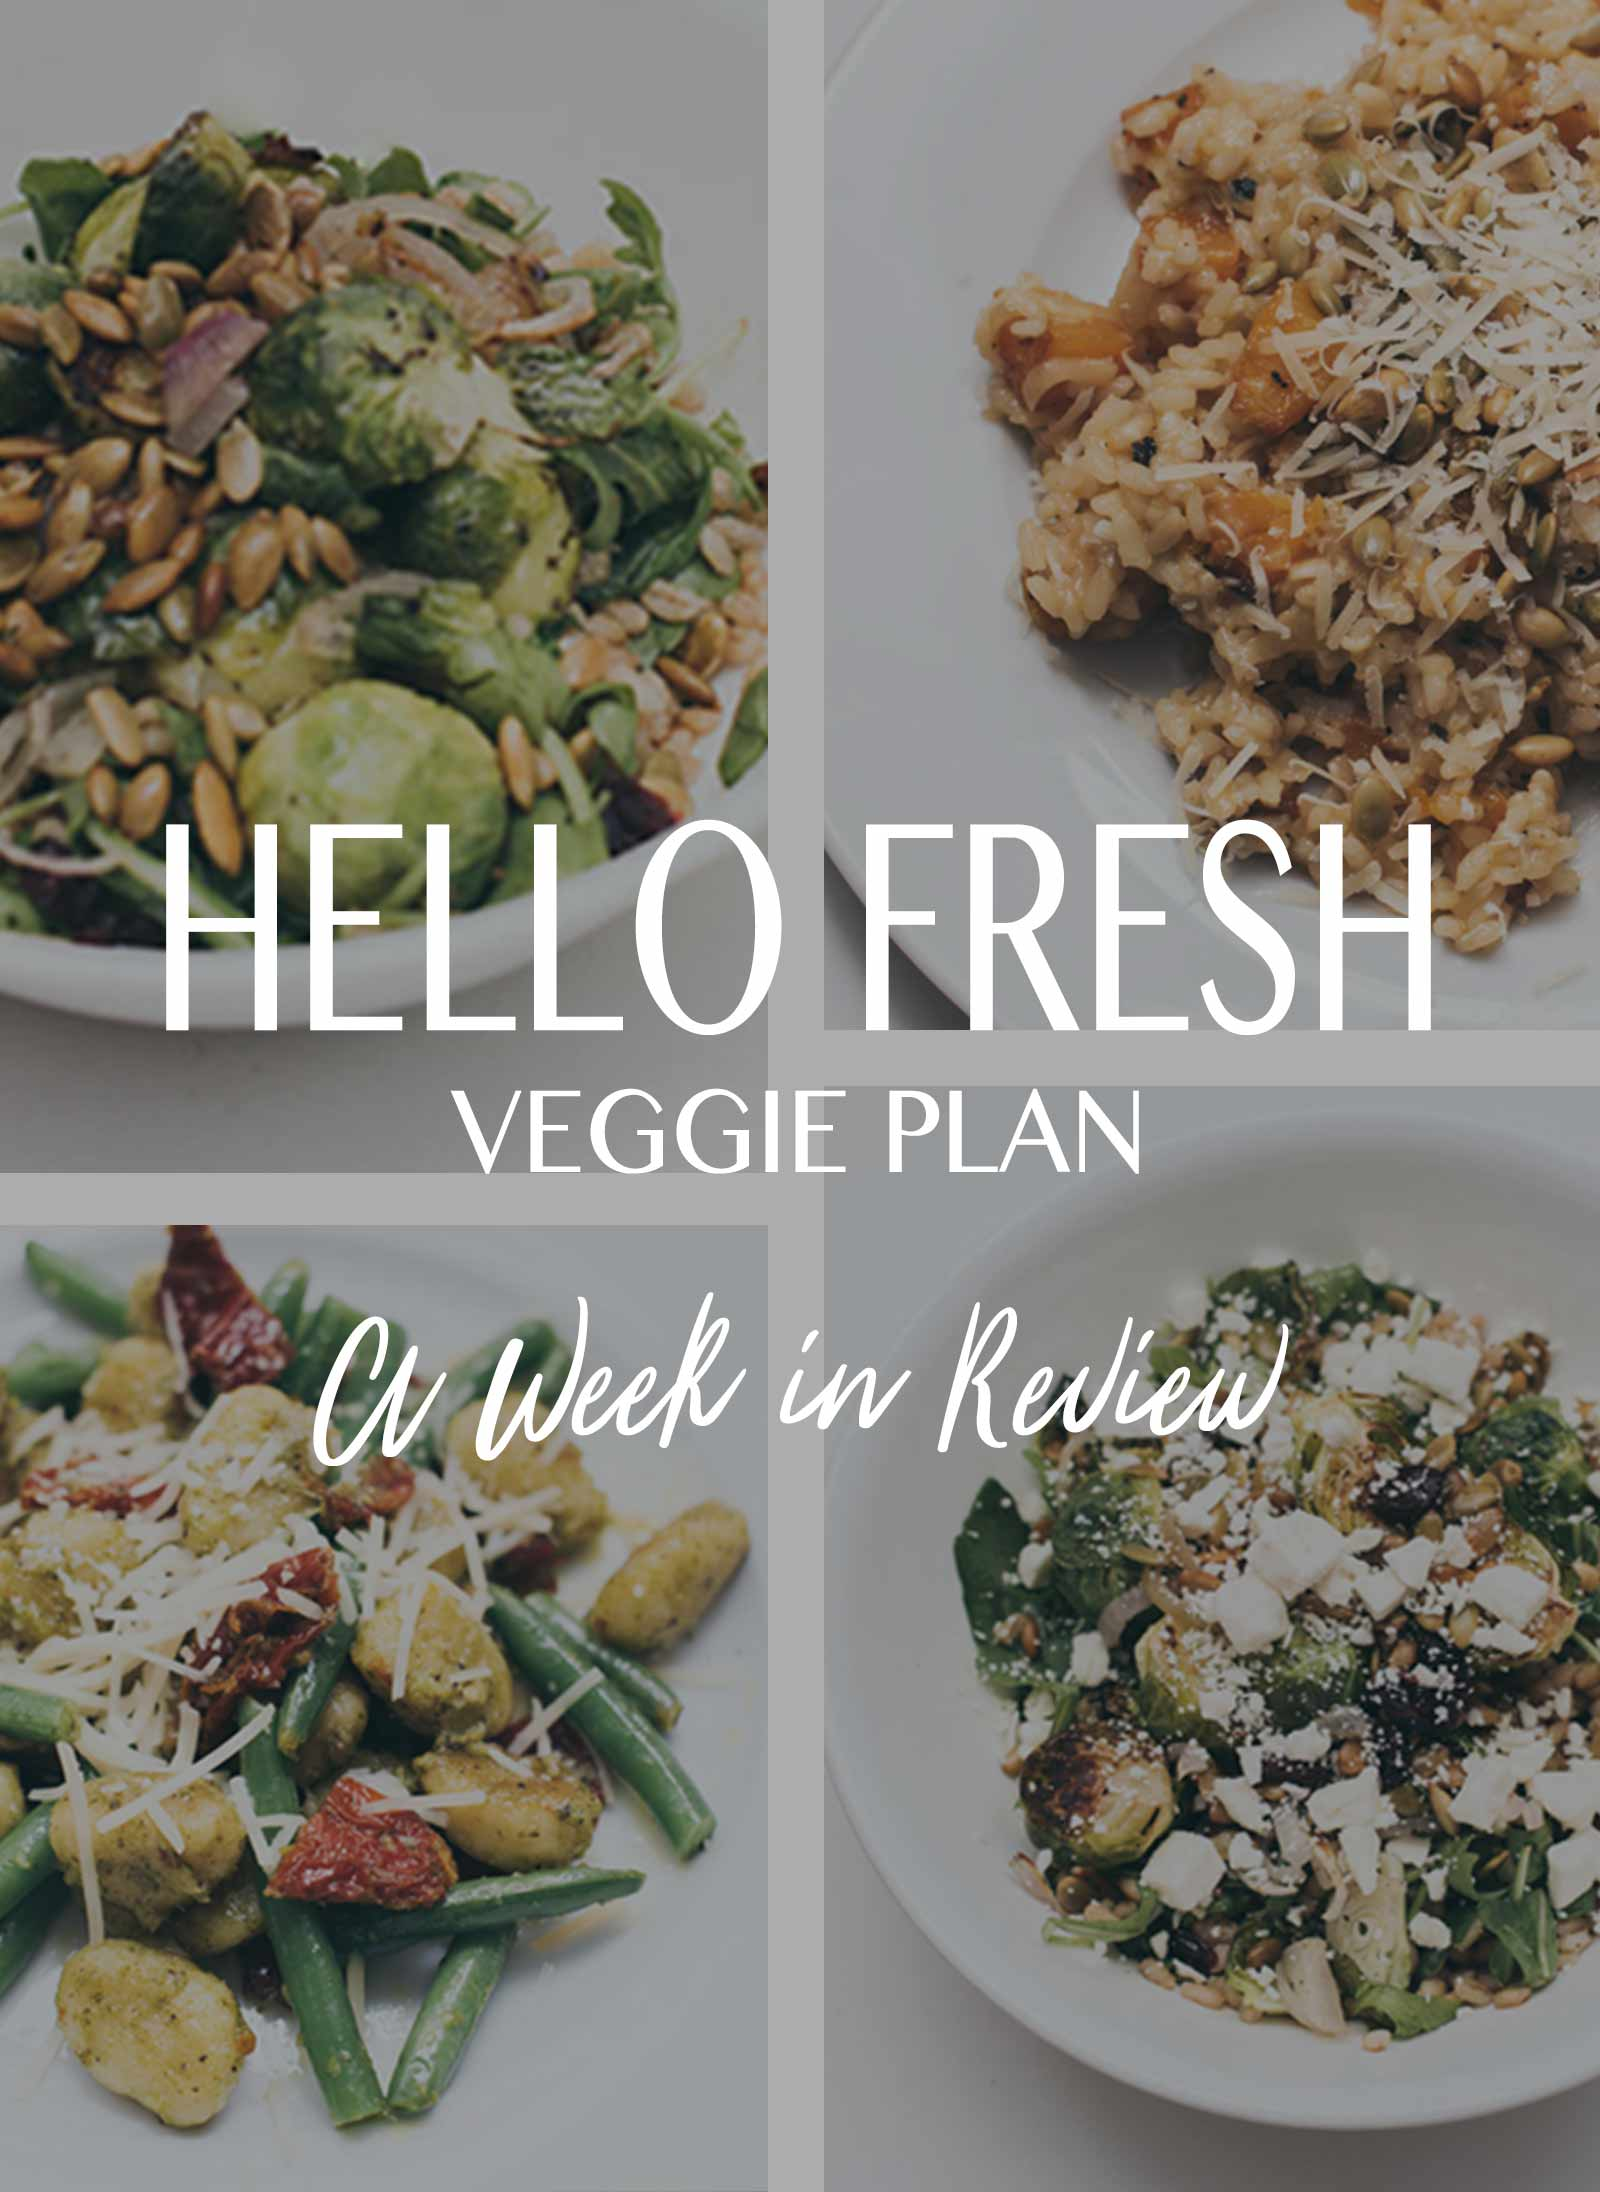 Hellofresh  Meal Kit Delivery Service Specifications And Price